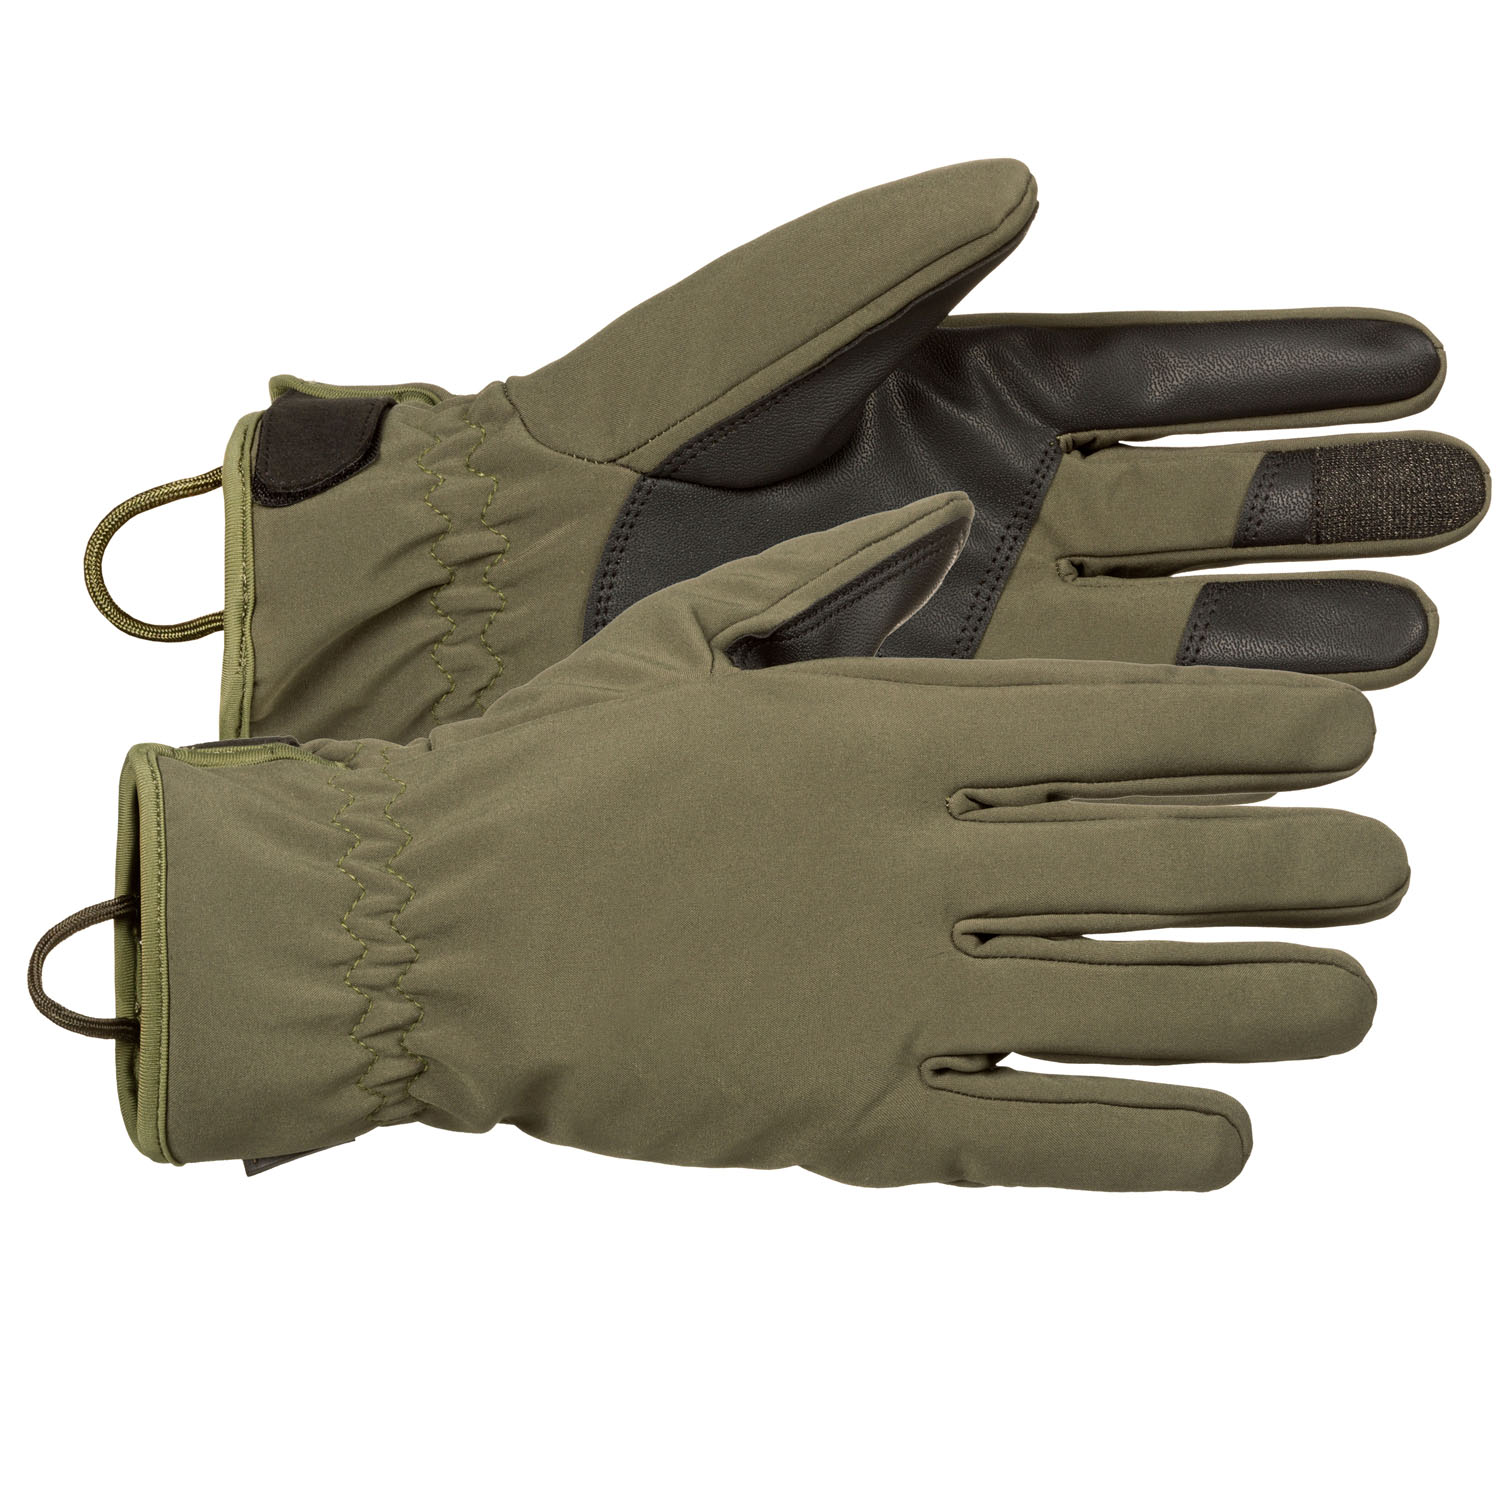 Demi-season field waterproof gloves